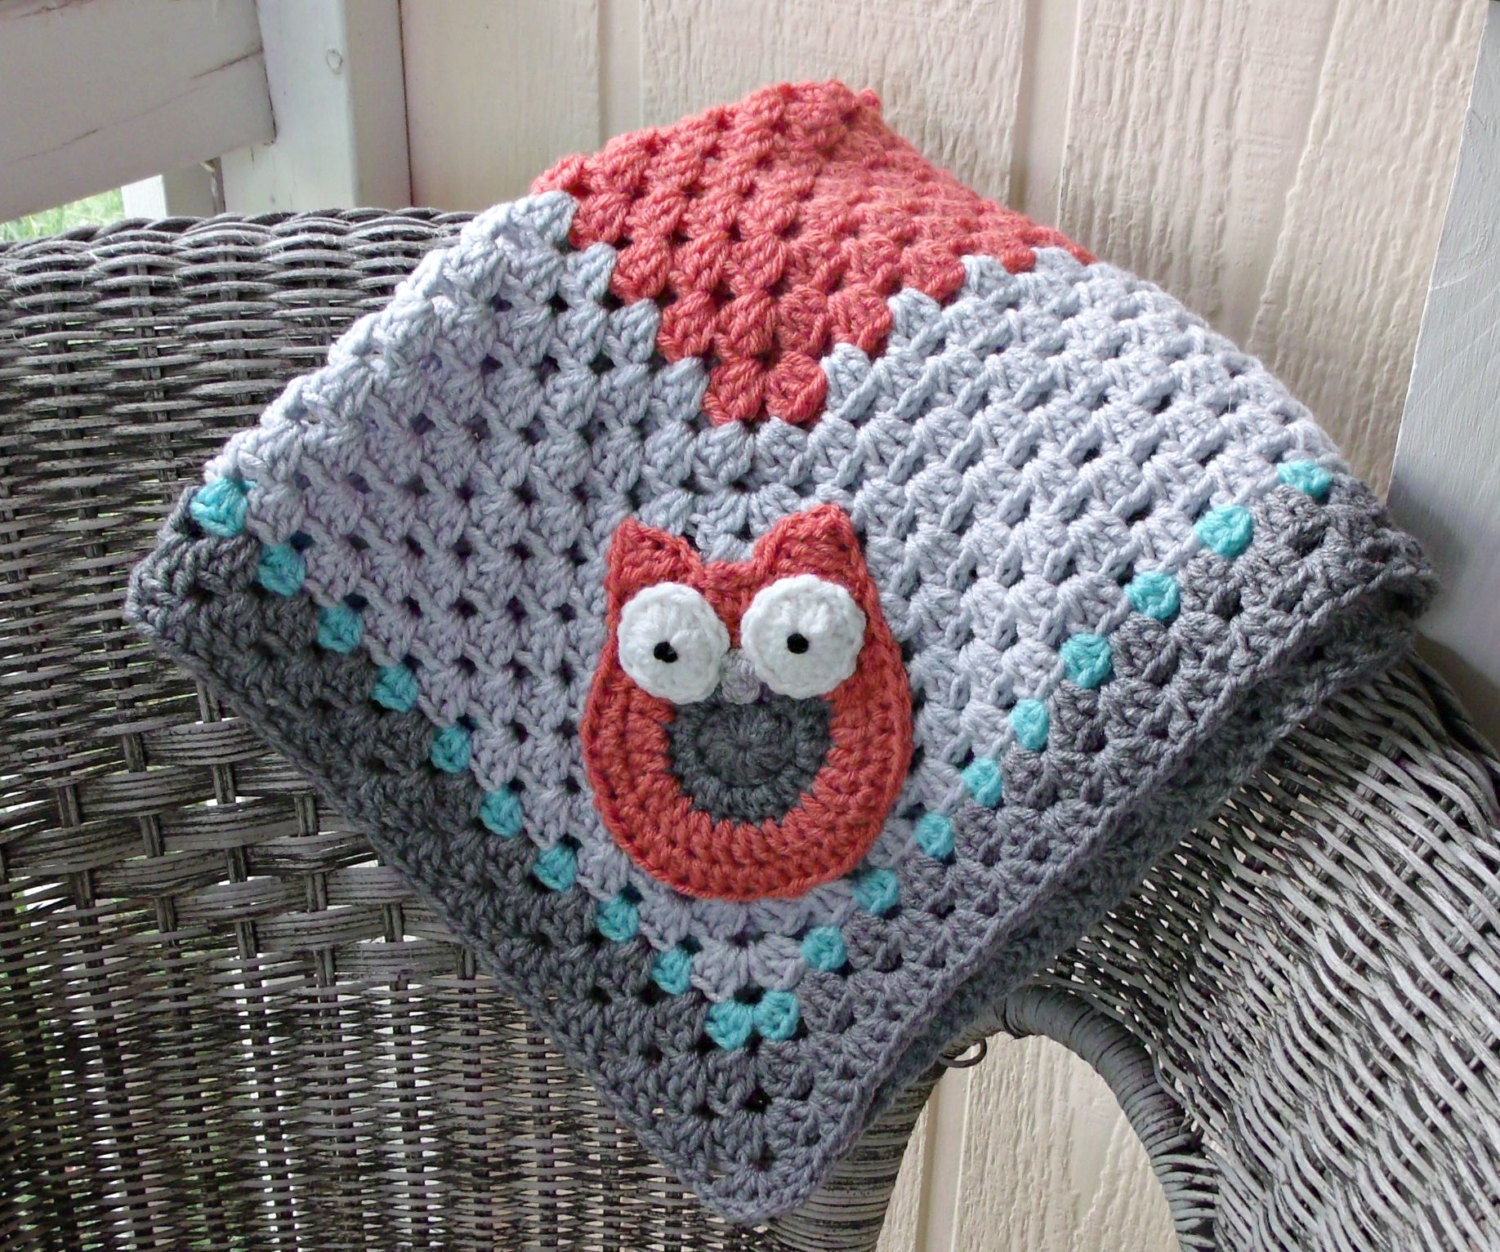 Crochet Owl Baby Blanket : Kitchen & Dining